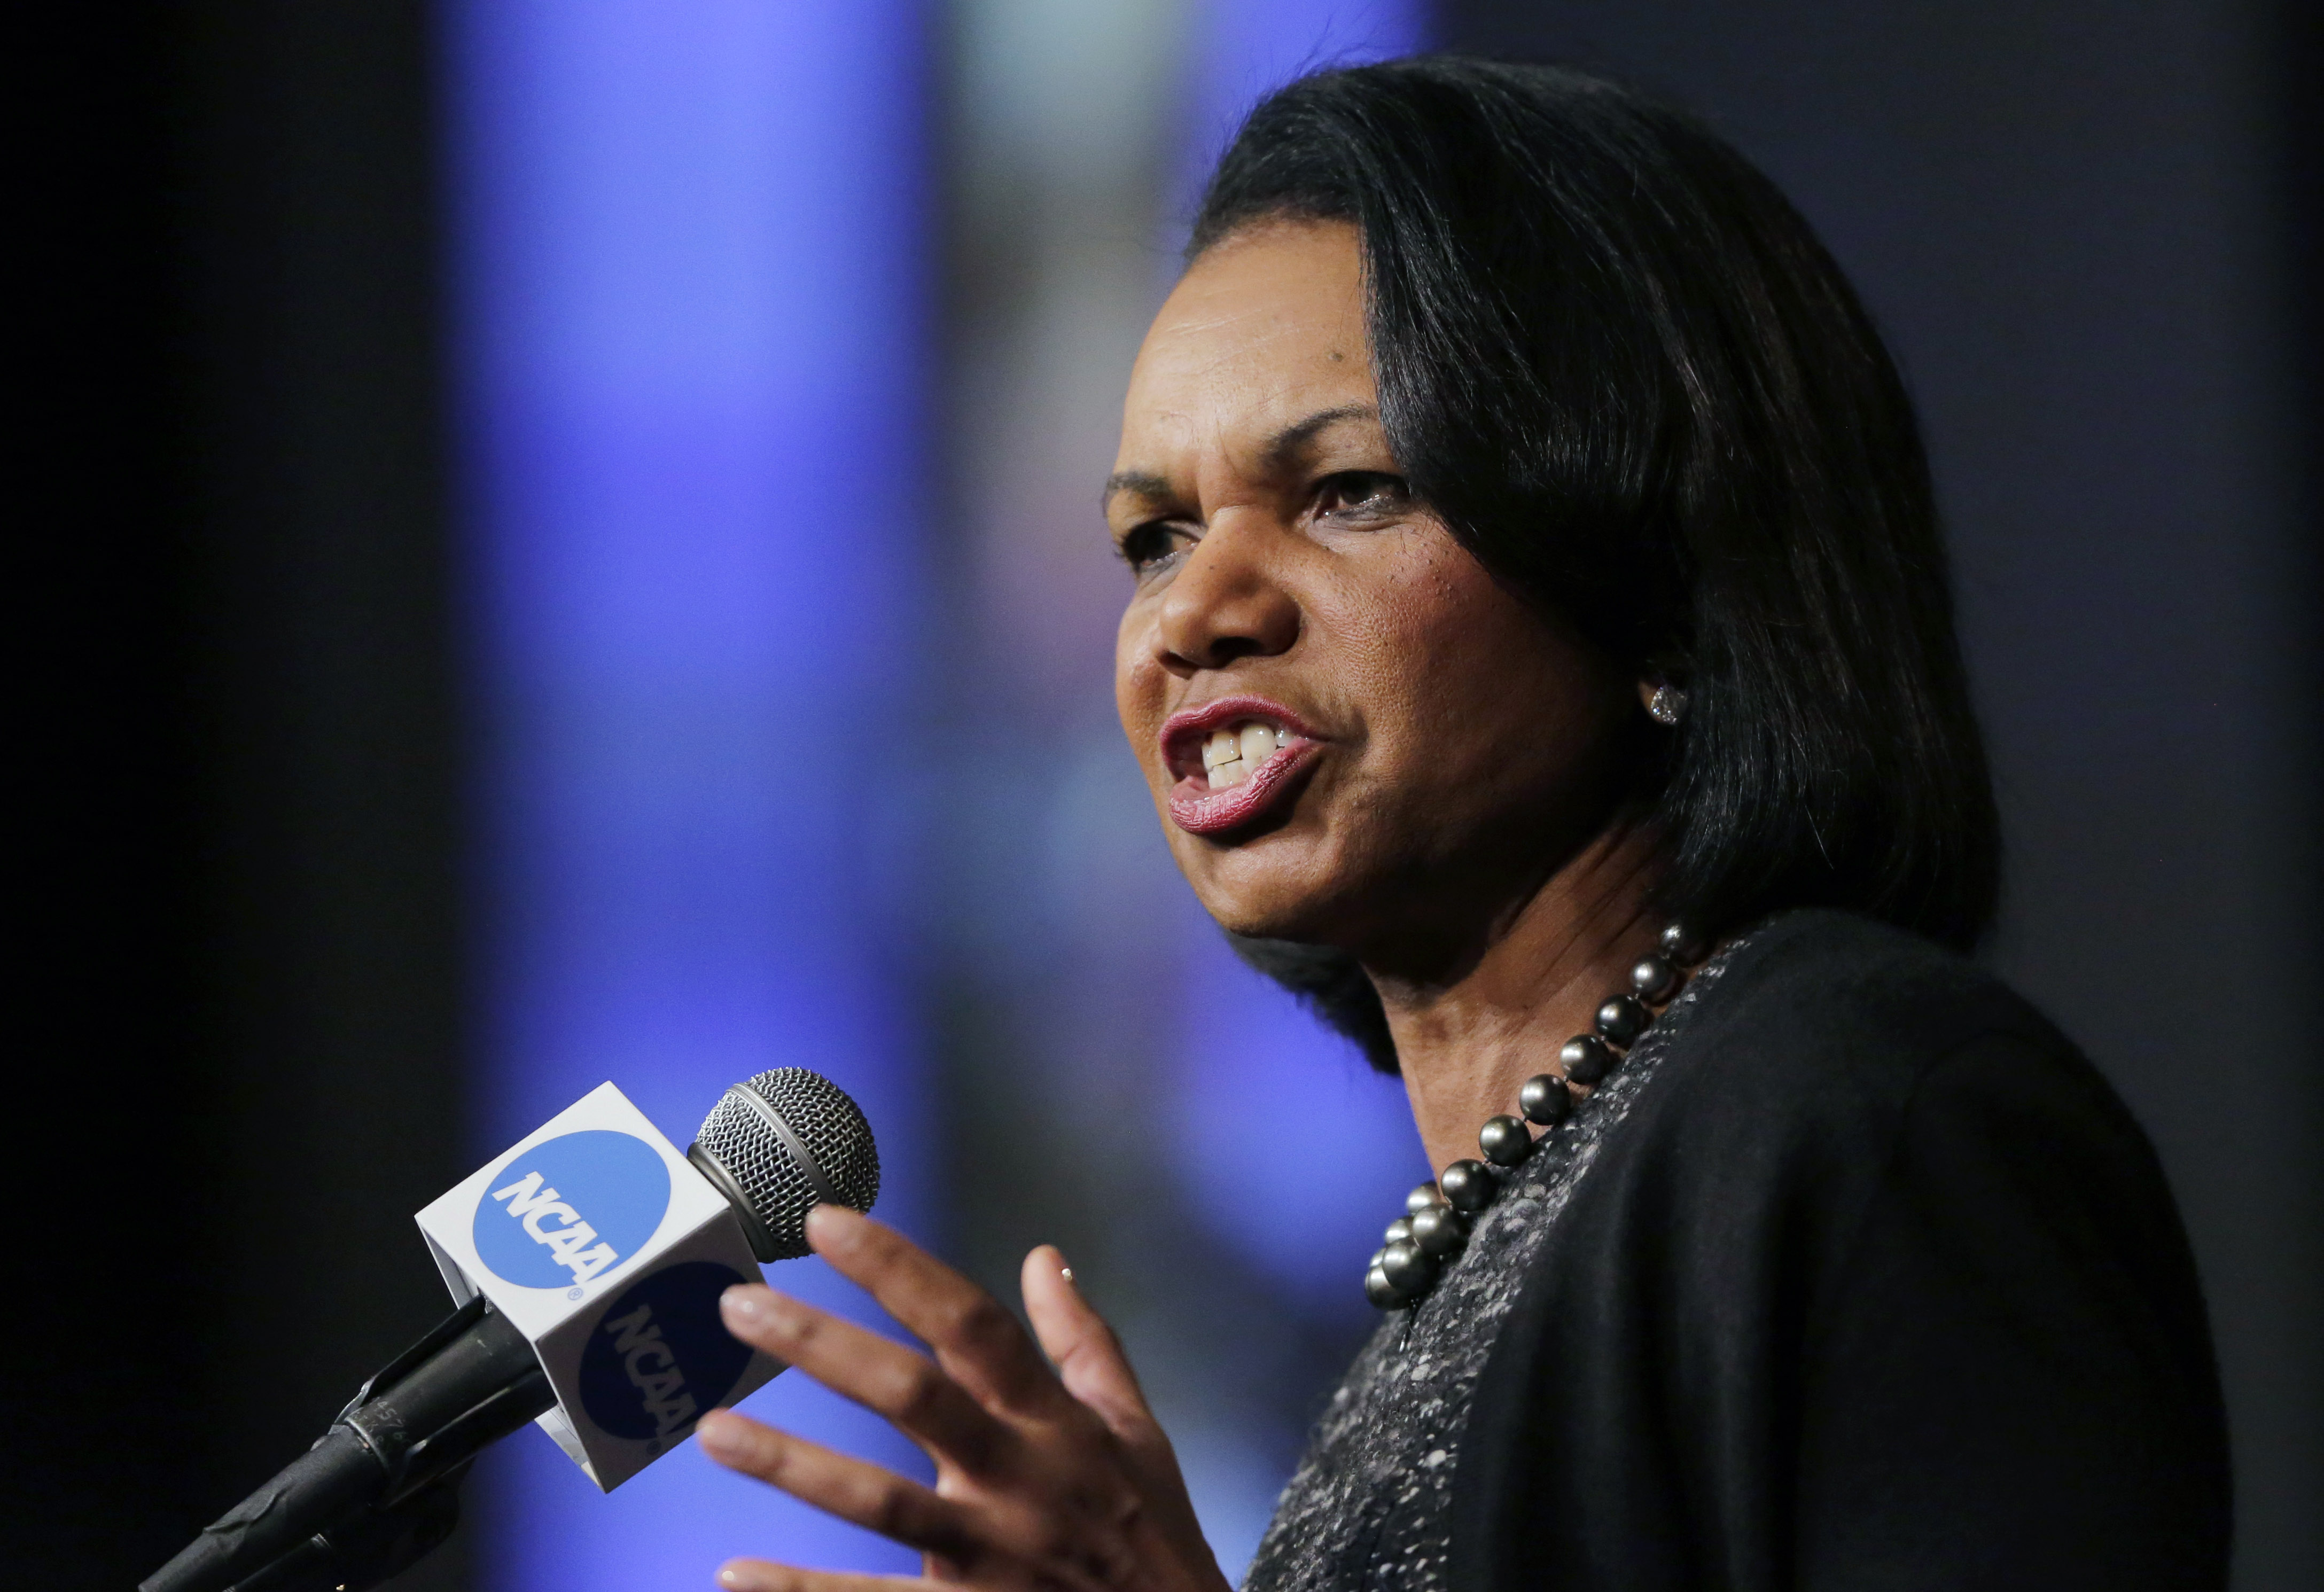 Former Secretary of State Condoleeza Rice speaks during a luncheon at the NCAA Convention, Thursday, Jan. 14, 2016, in San Antonio. (AP Photo/Eric Gay)